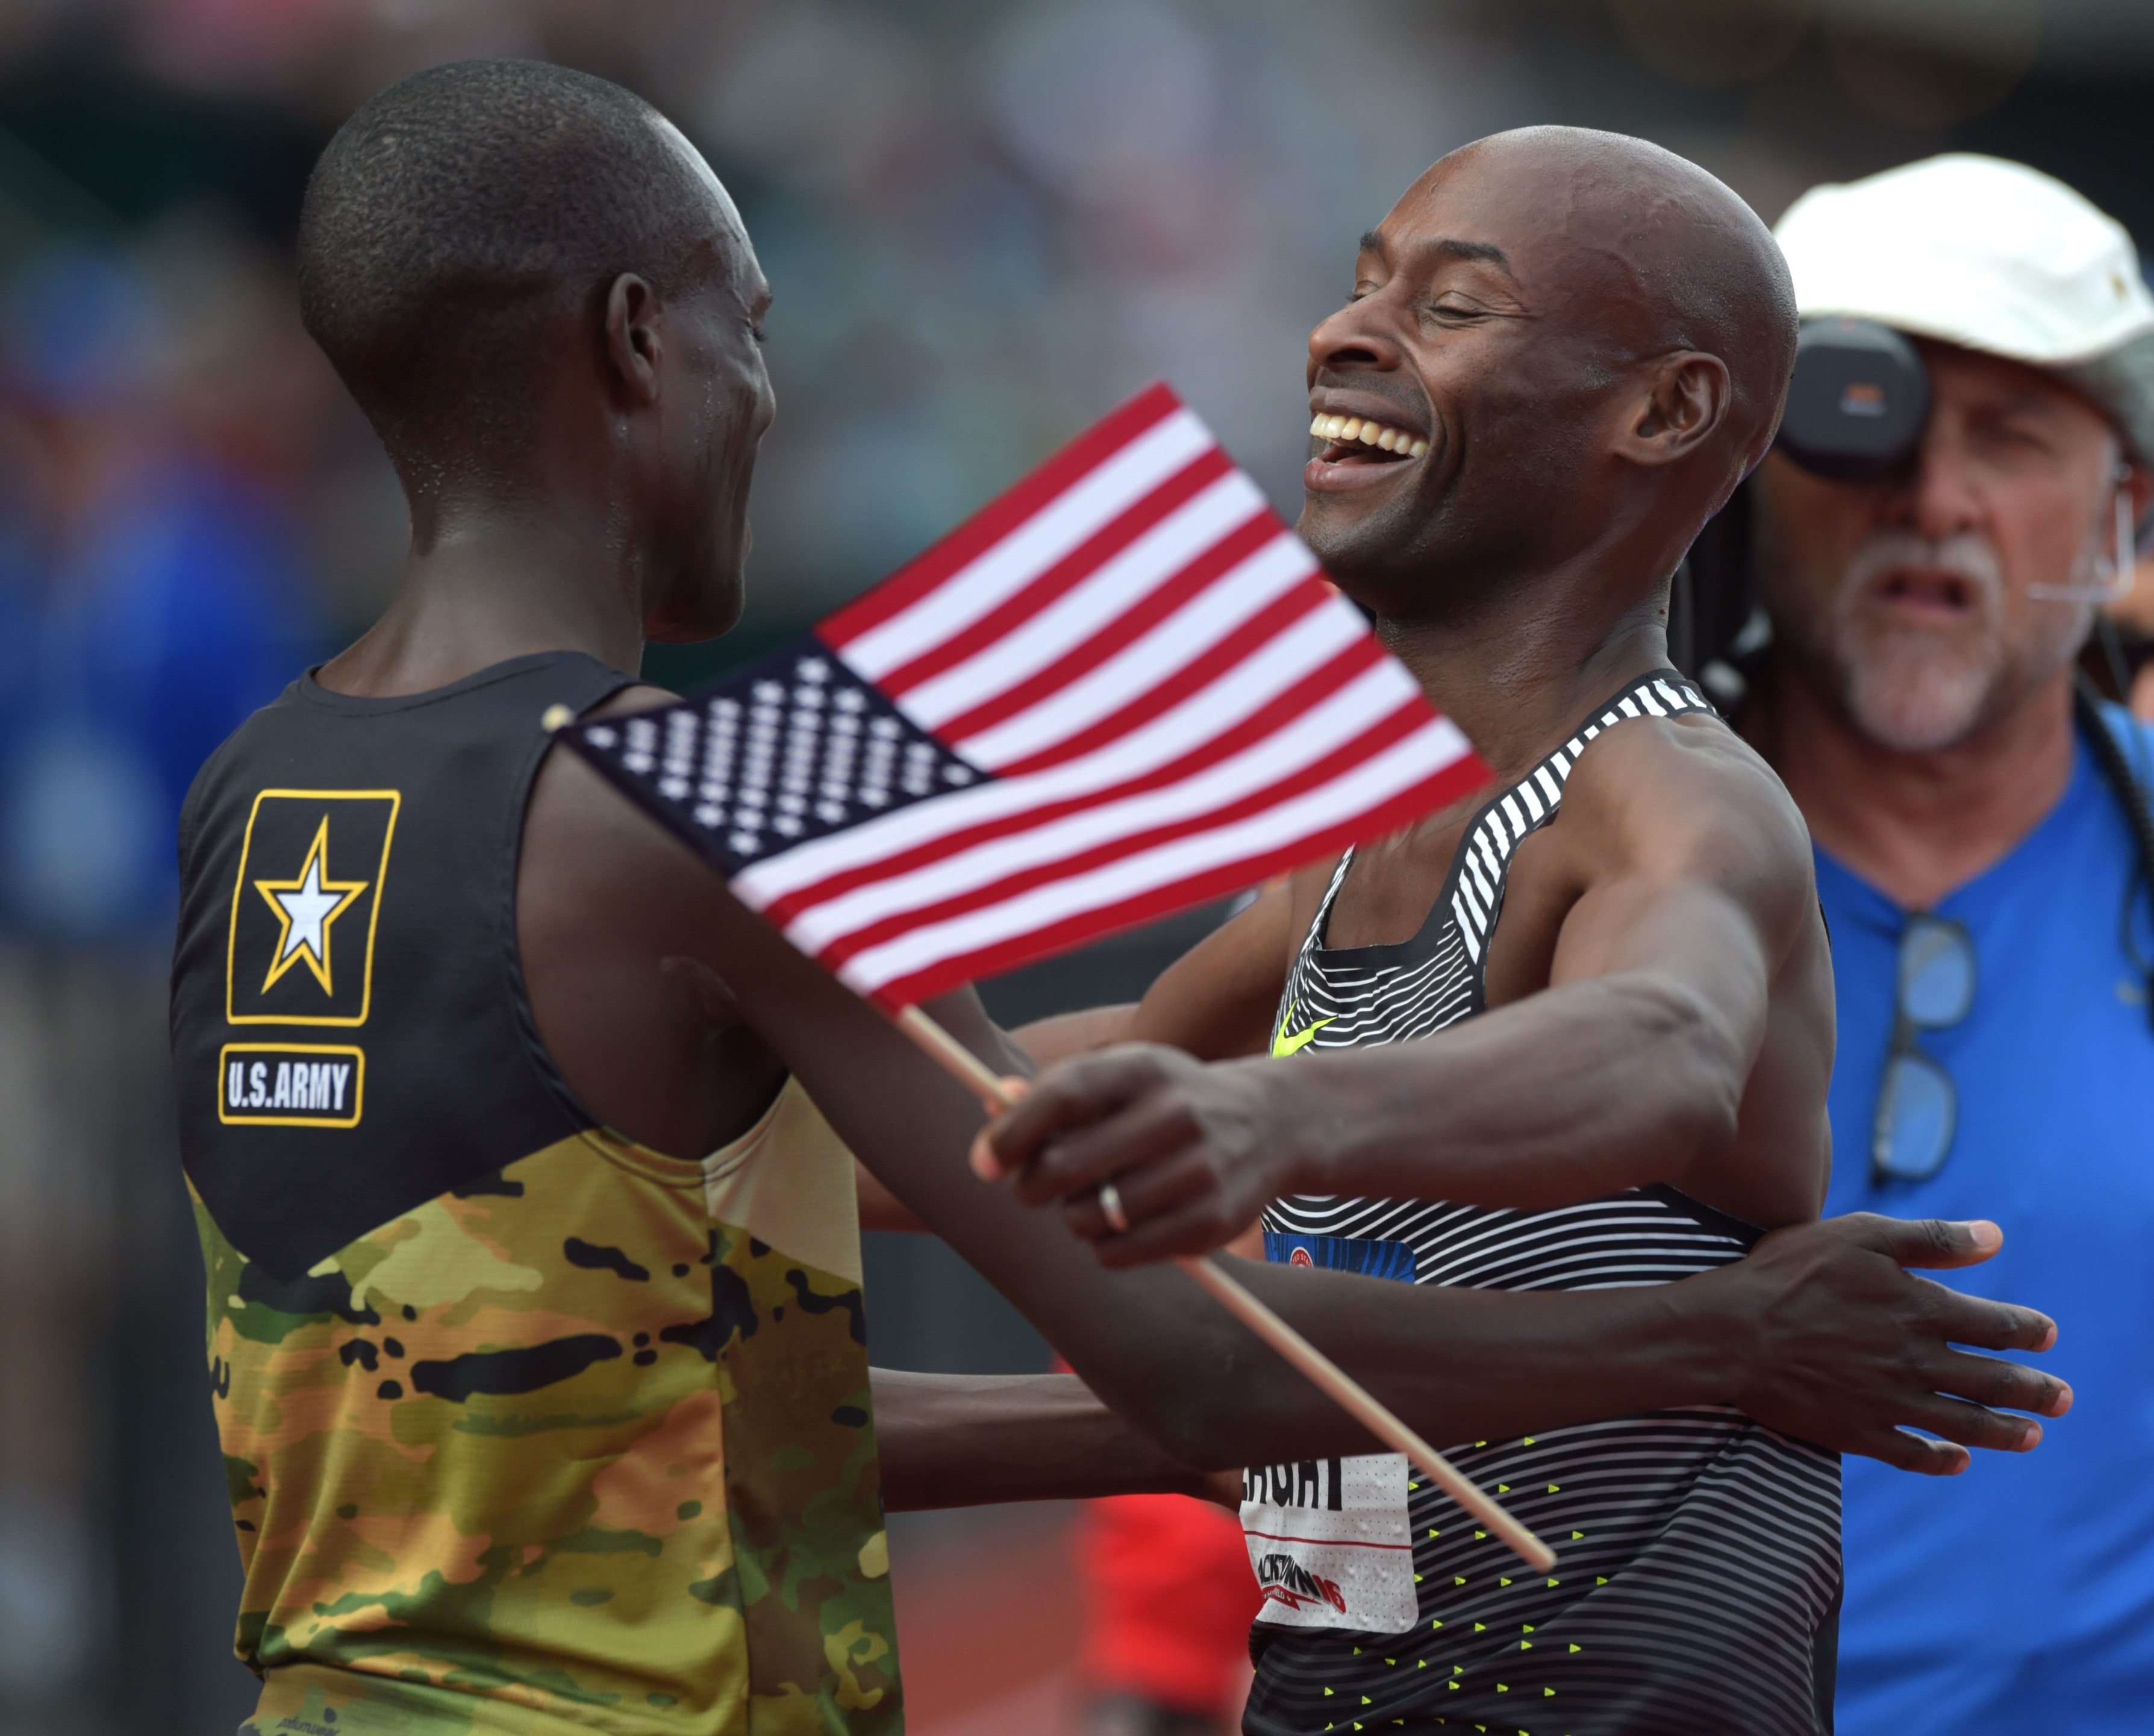 Jul 9, 2016; Eugene, OR, USA; Bernard Lagat (right) reacts with Shadrack Kipchirchir (left) after winning the men's 5000m final during the 2016 U.S. Olympic track and field team trials at Hayward Field. Mandatory Credit: Glenn Andrews-USA TODAY Sports